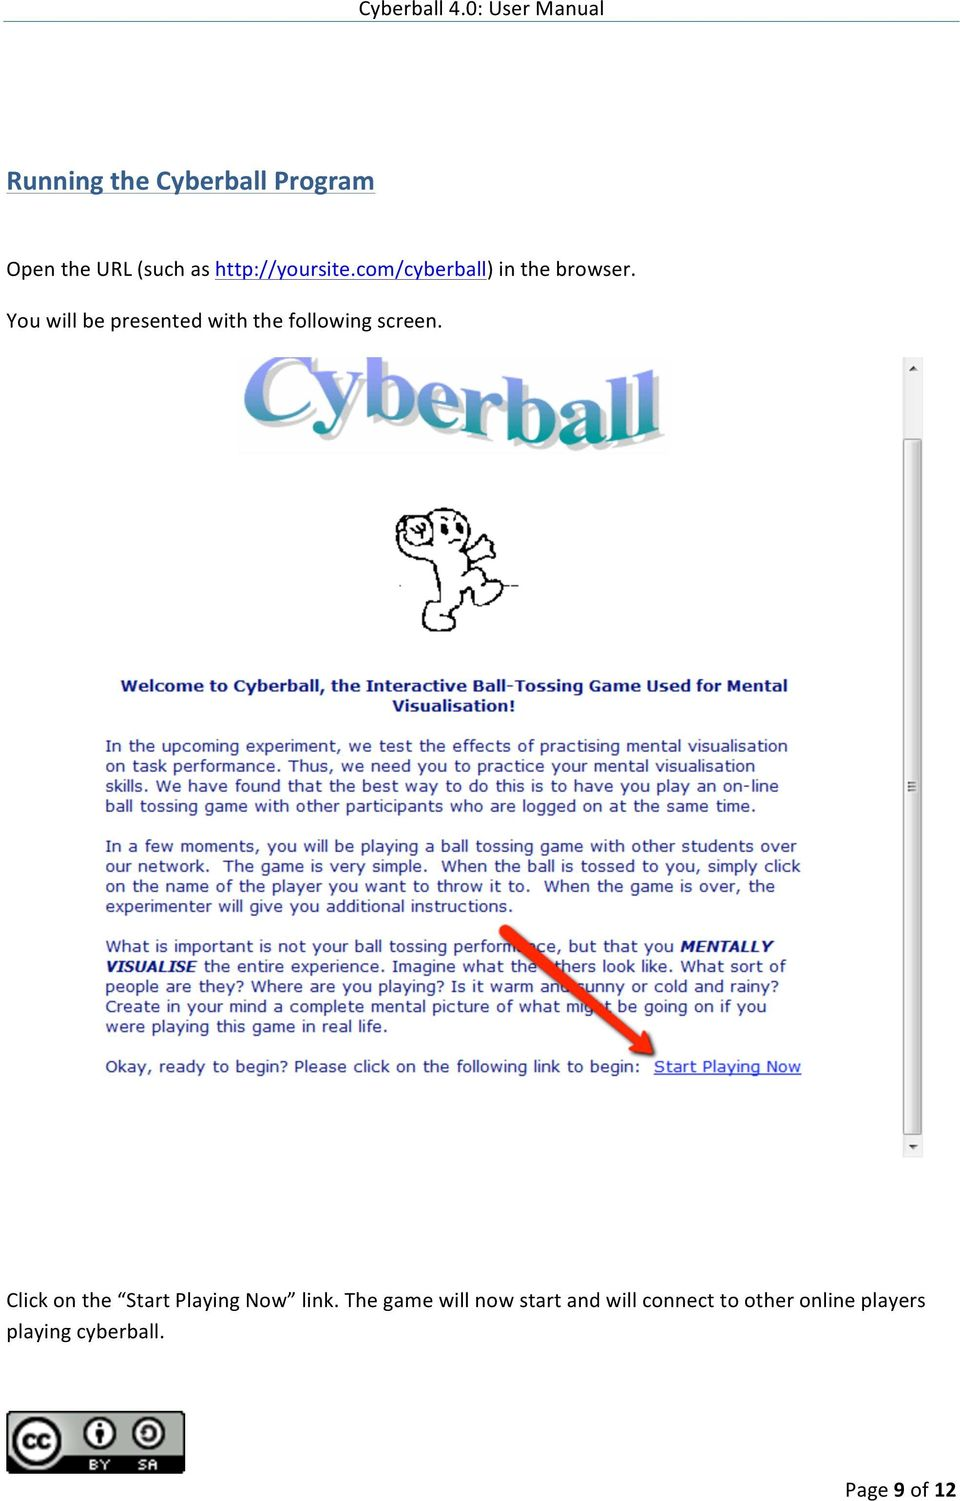 user manual for cyberball 4 0 beta pdf